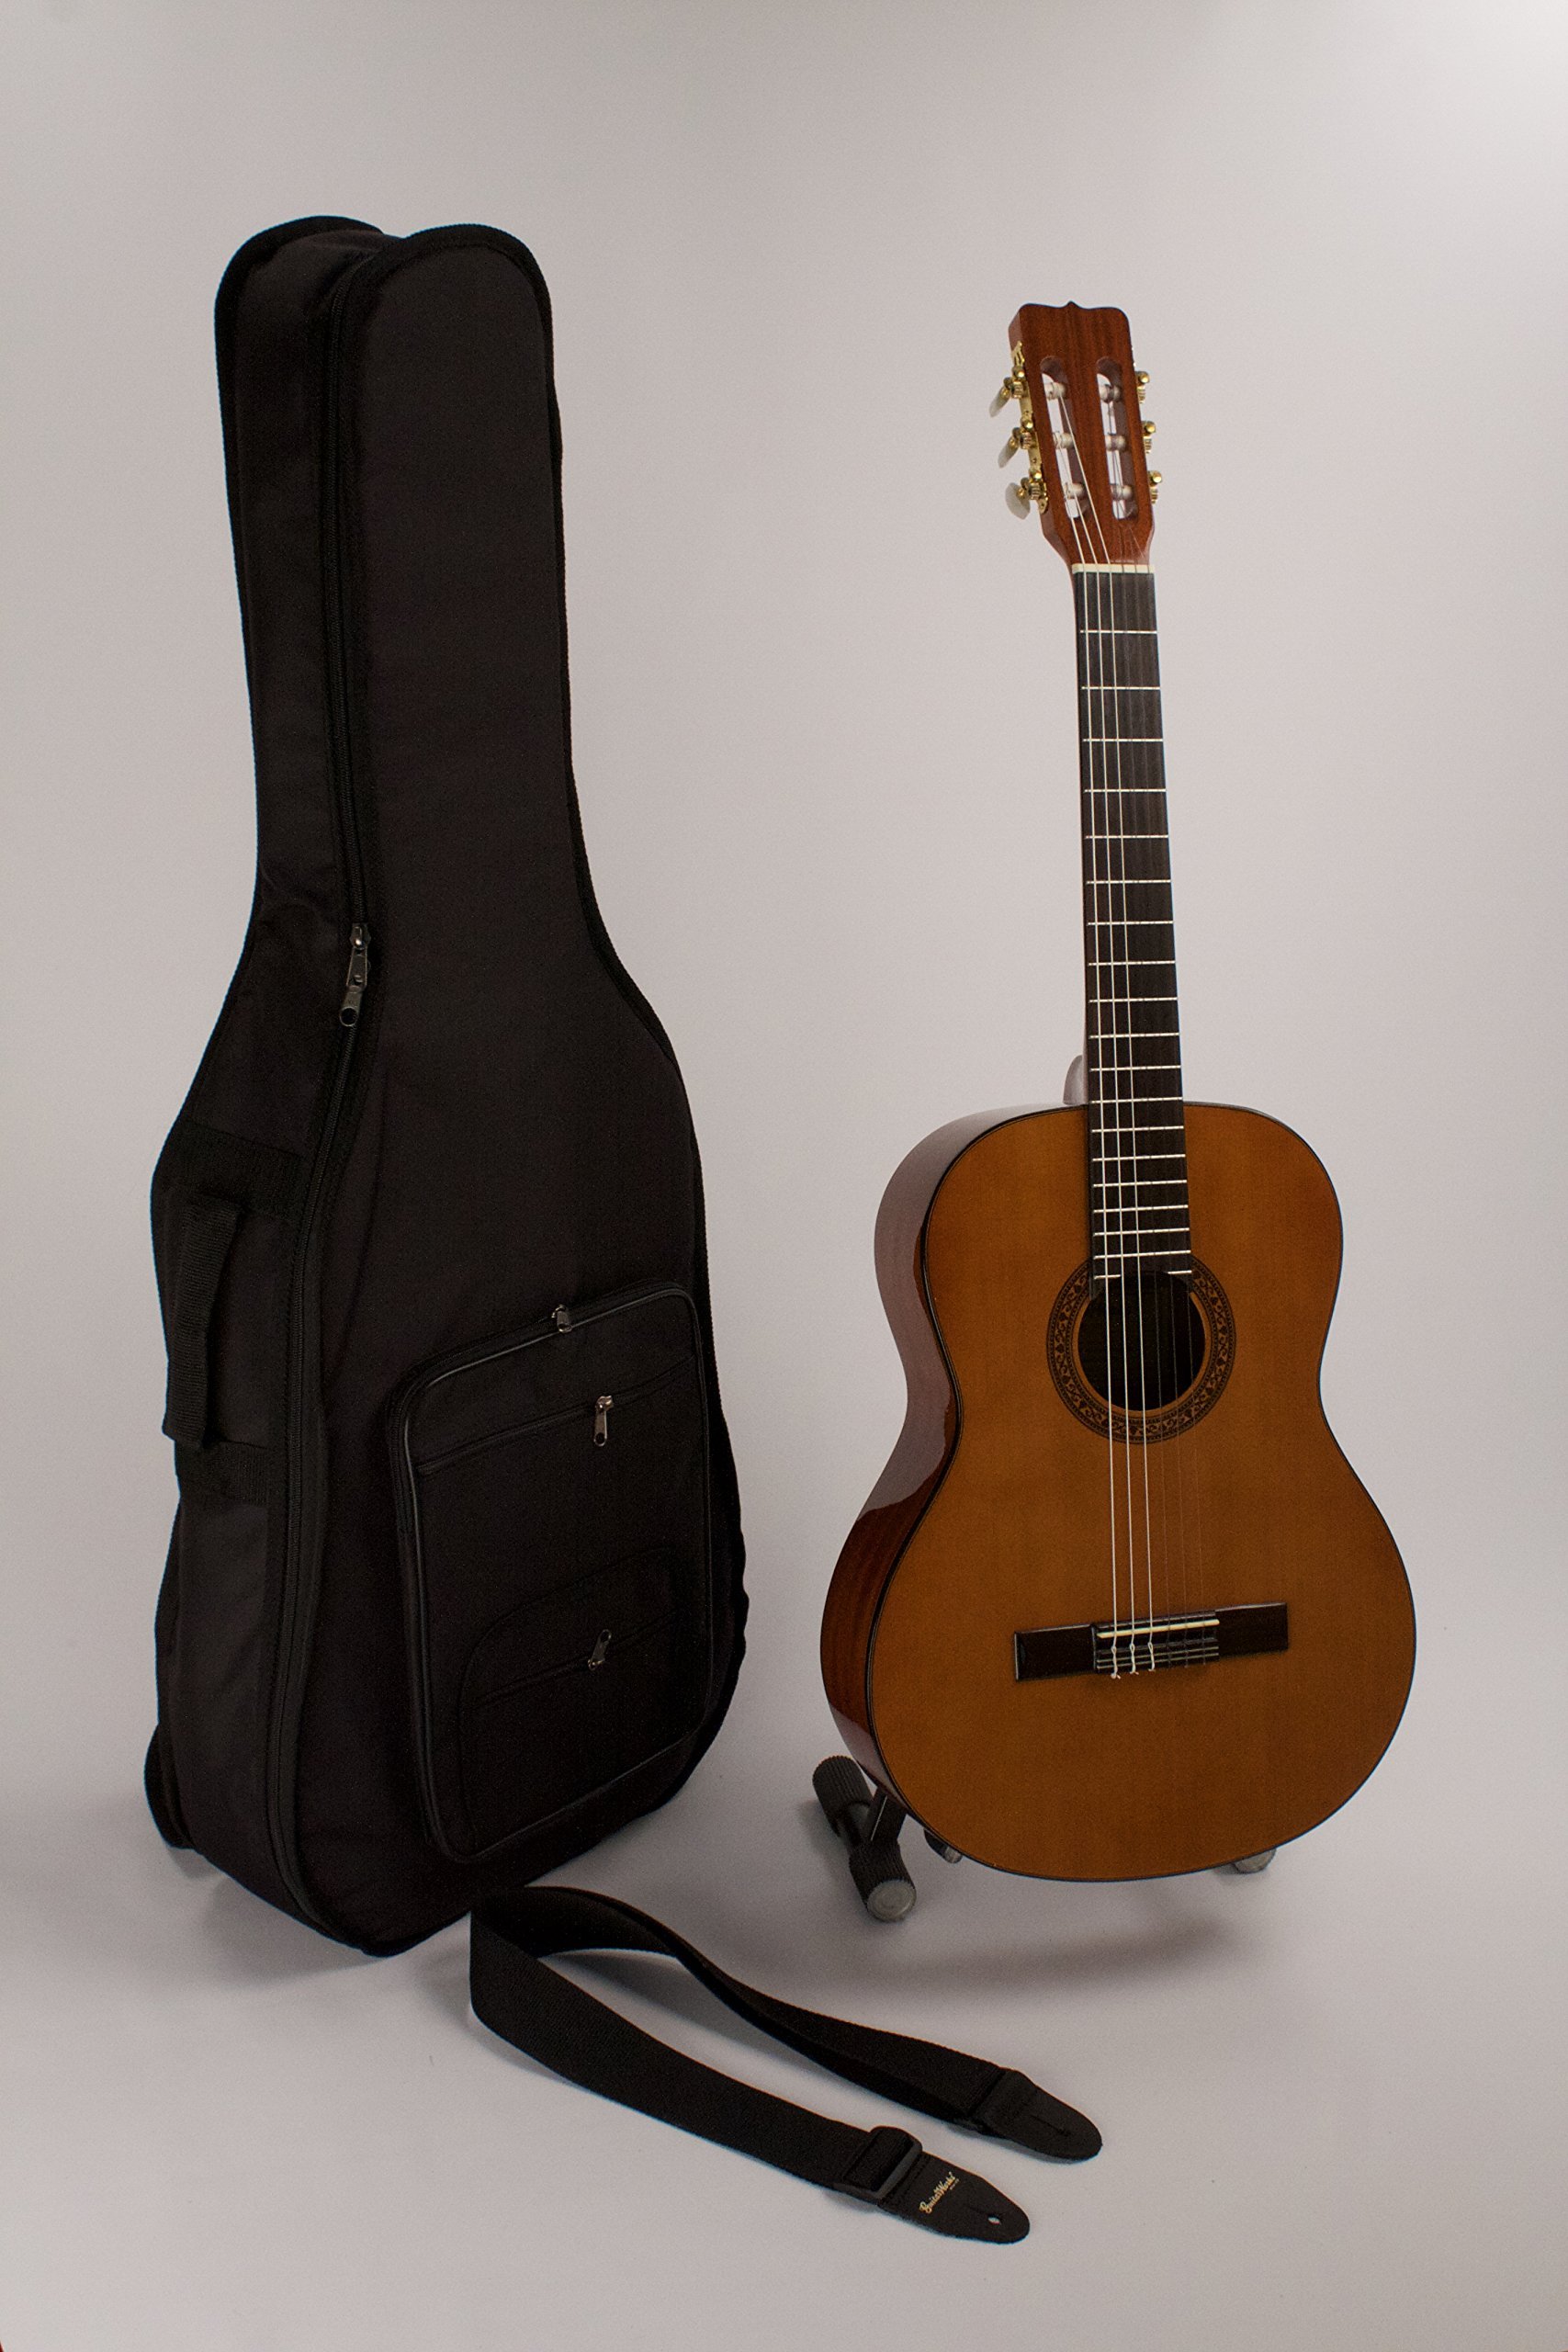 Classical Guitar Nylon String Higher Quality Full Size LEFT HANDED Completely Set-Up In My Shop For Perfect & Easy Play With Easy & Stay In Tune Strings & Strap & Case